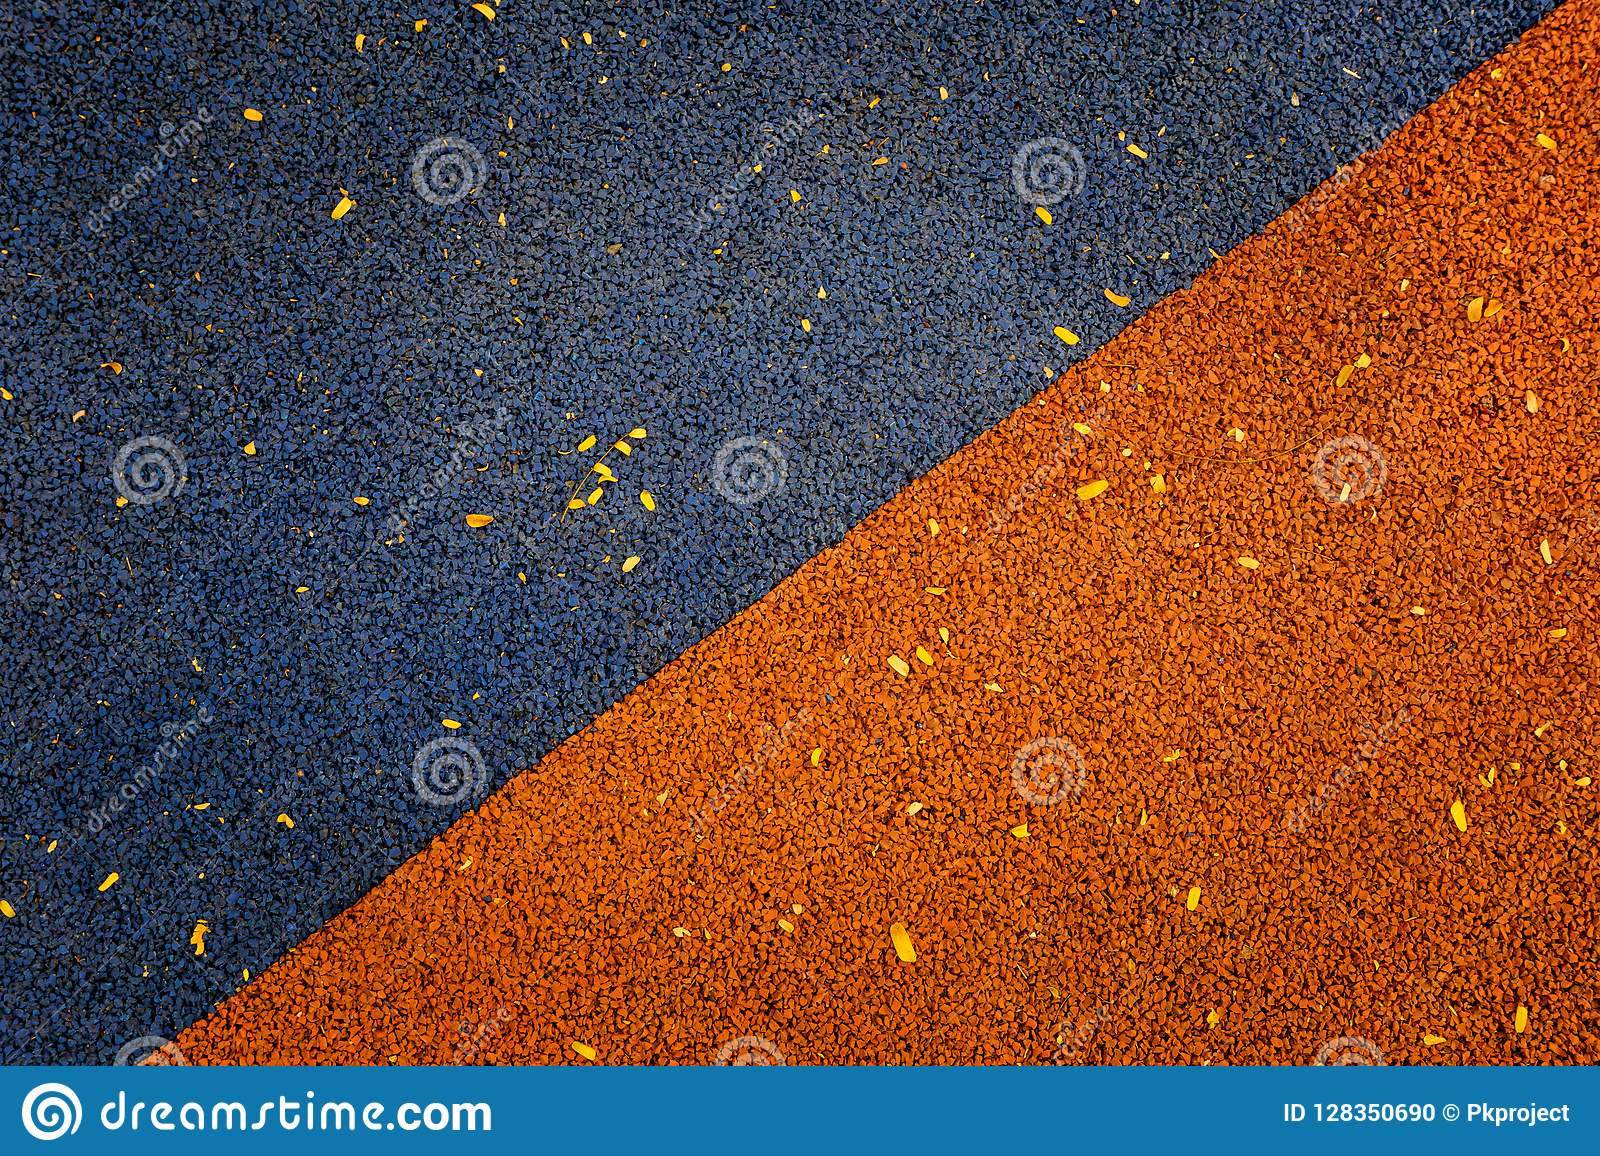 Blue And Orange Color Of Rubber Flooring Play Park Flooring Back